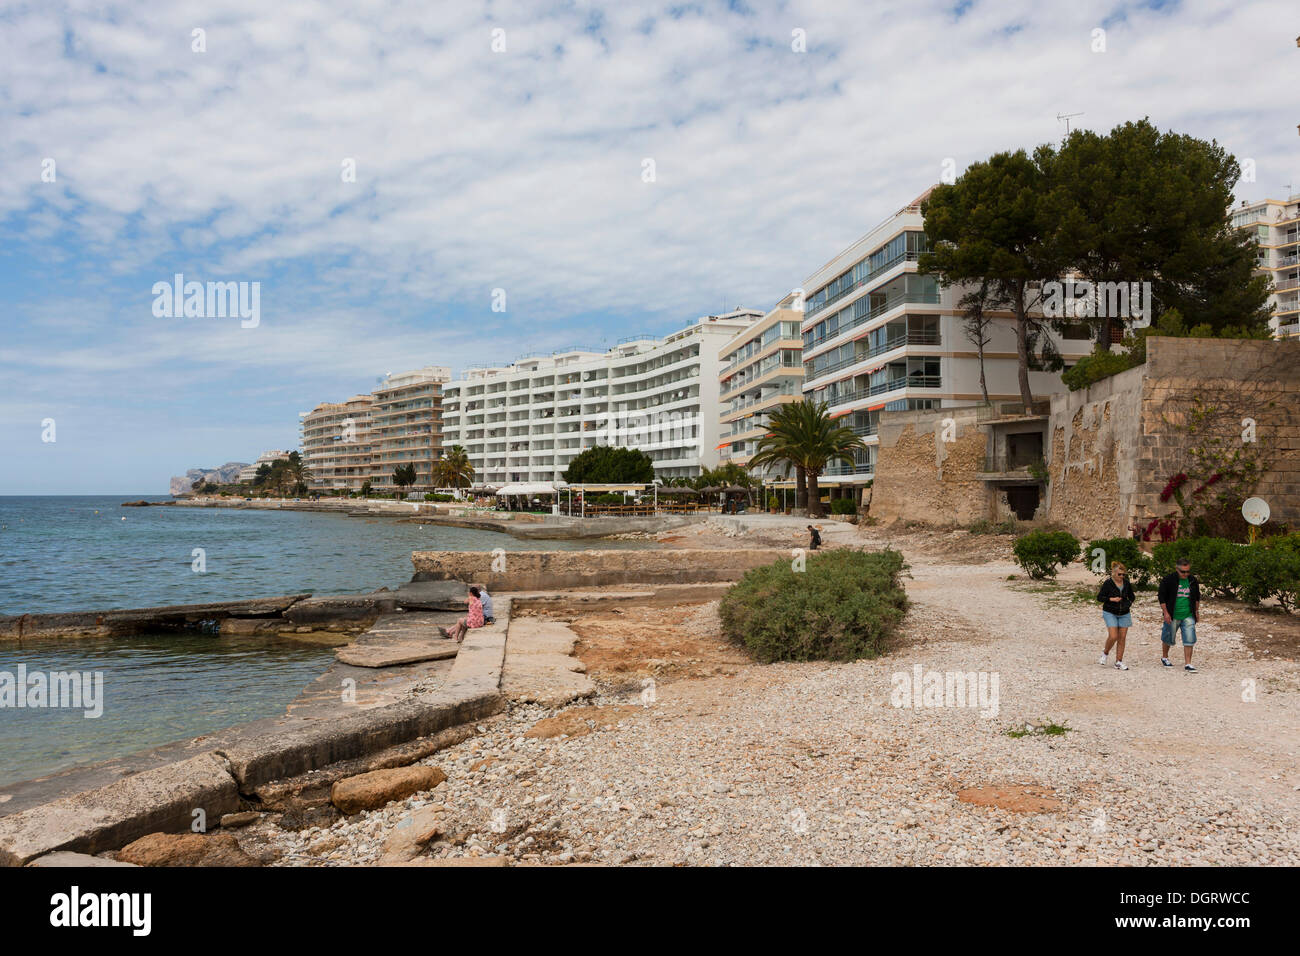 Hotel complexes along the bay of Santa Ponsa, Costa de la Calma, Mallorca, Balearic Islands, Spain, Europe - Stock Image